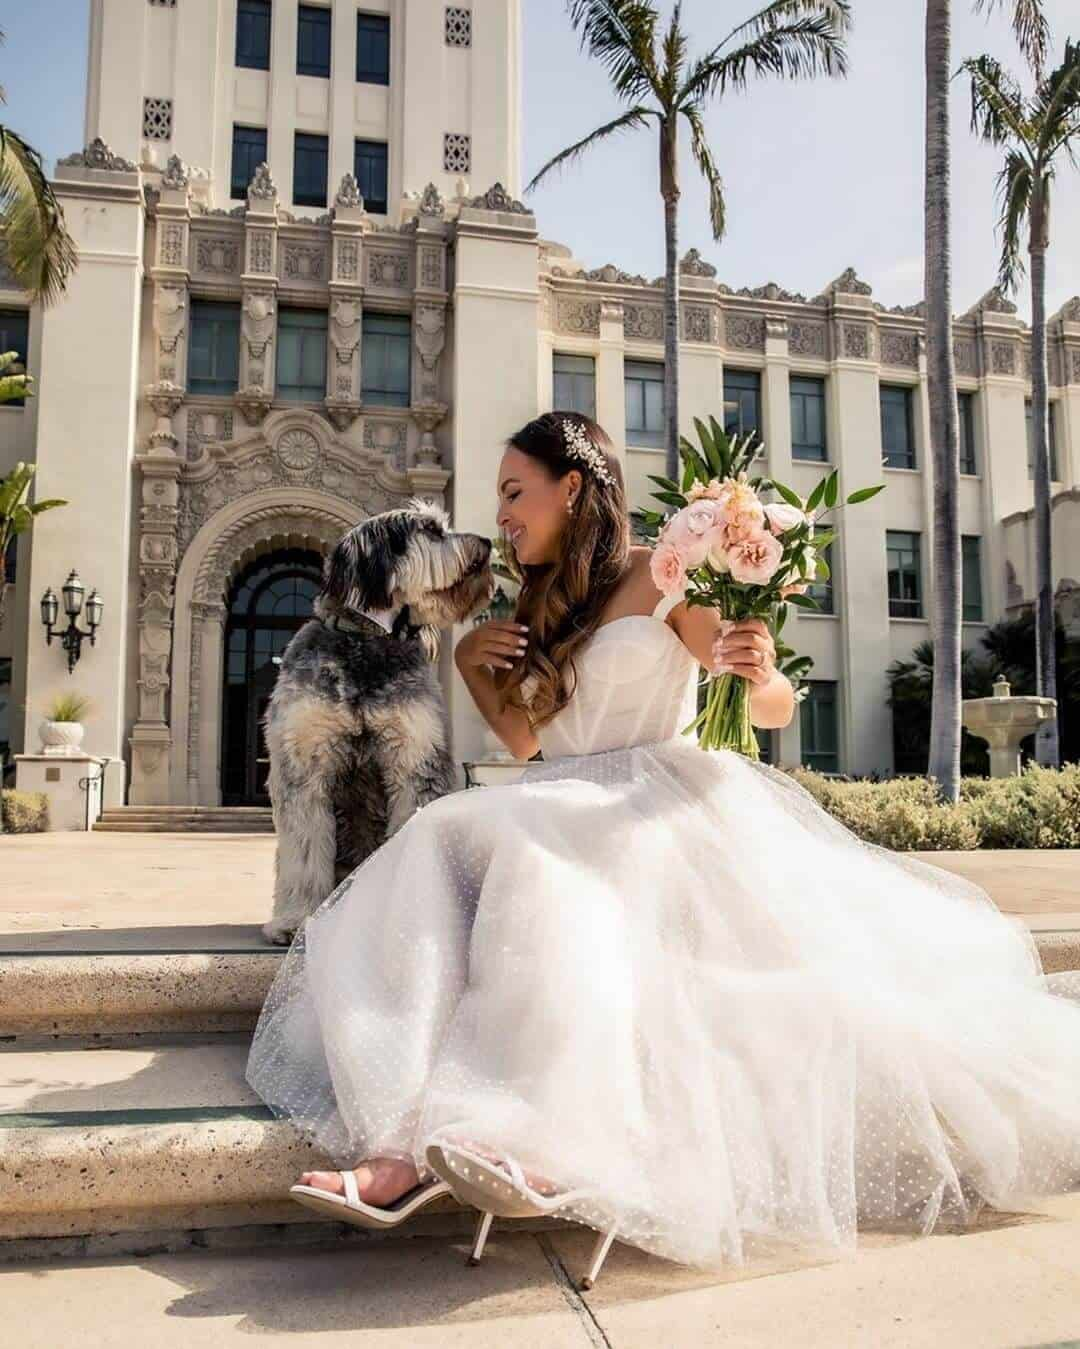 Wedding with Puppies Cute Wedding Puppy Beverly Hills Courthouse Melanee Shale Wolfgang 4 (1)